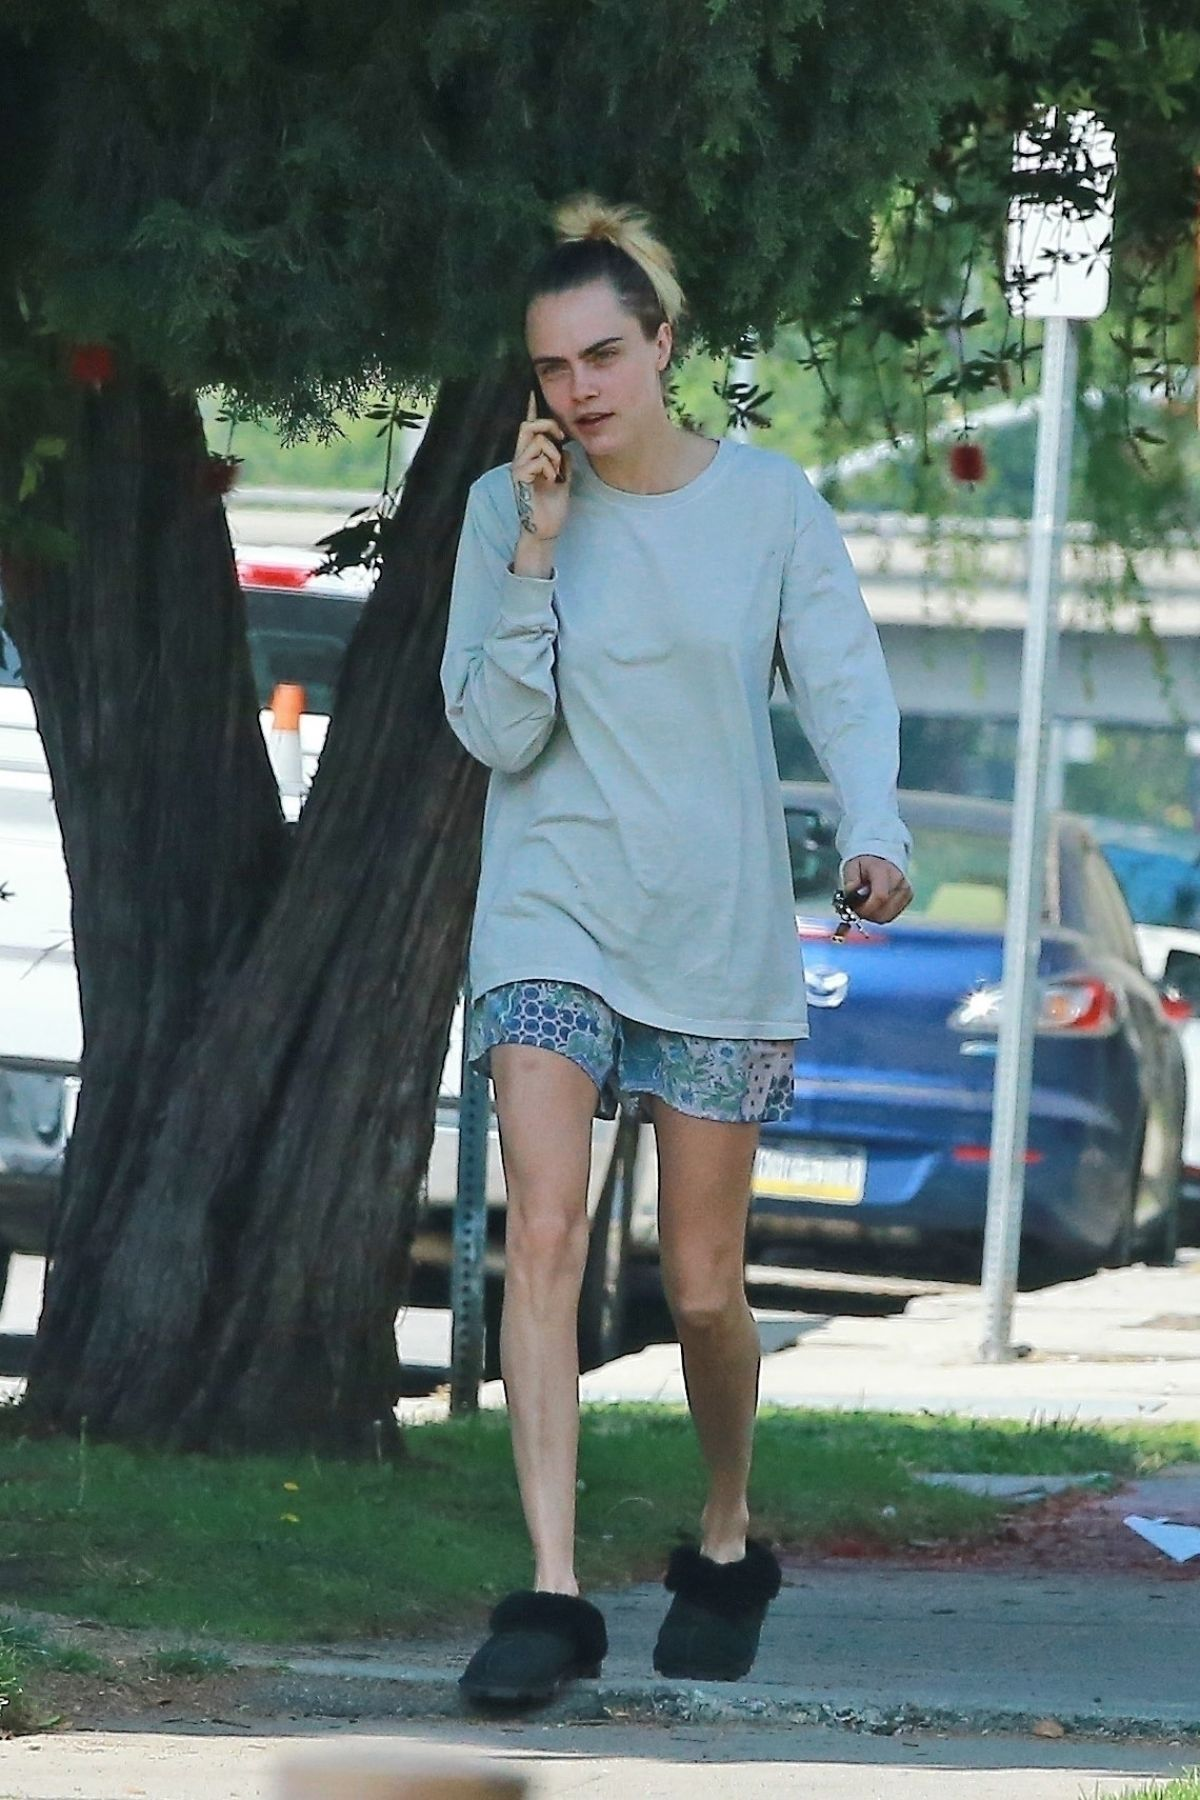 Cara Delevingne Out And About In Los Angeles 05 13 2020 Hawtcelebs